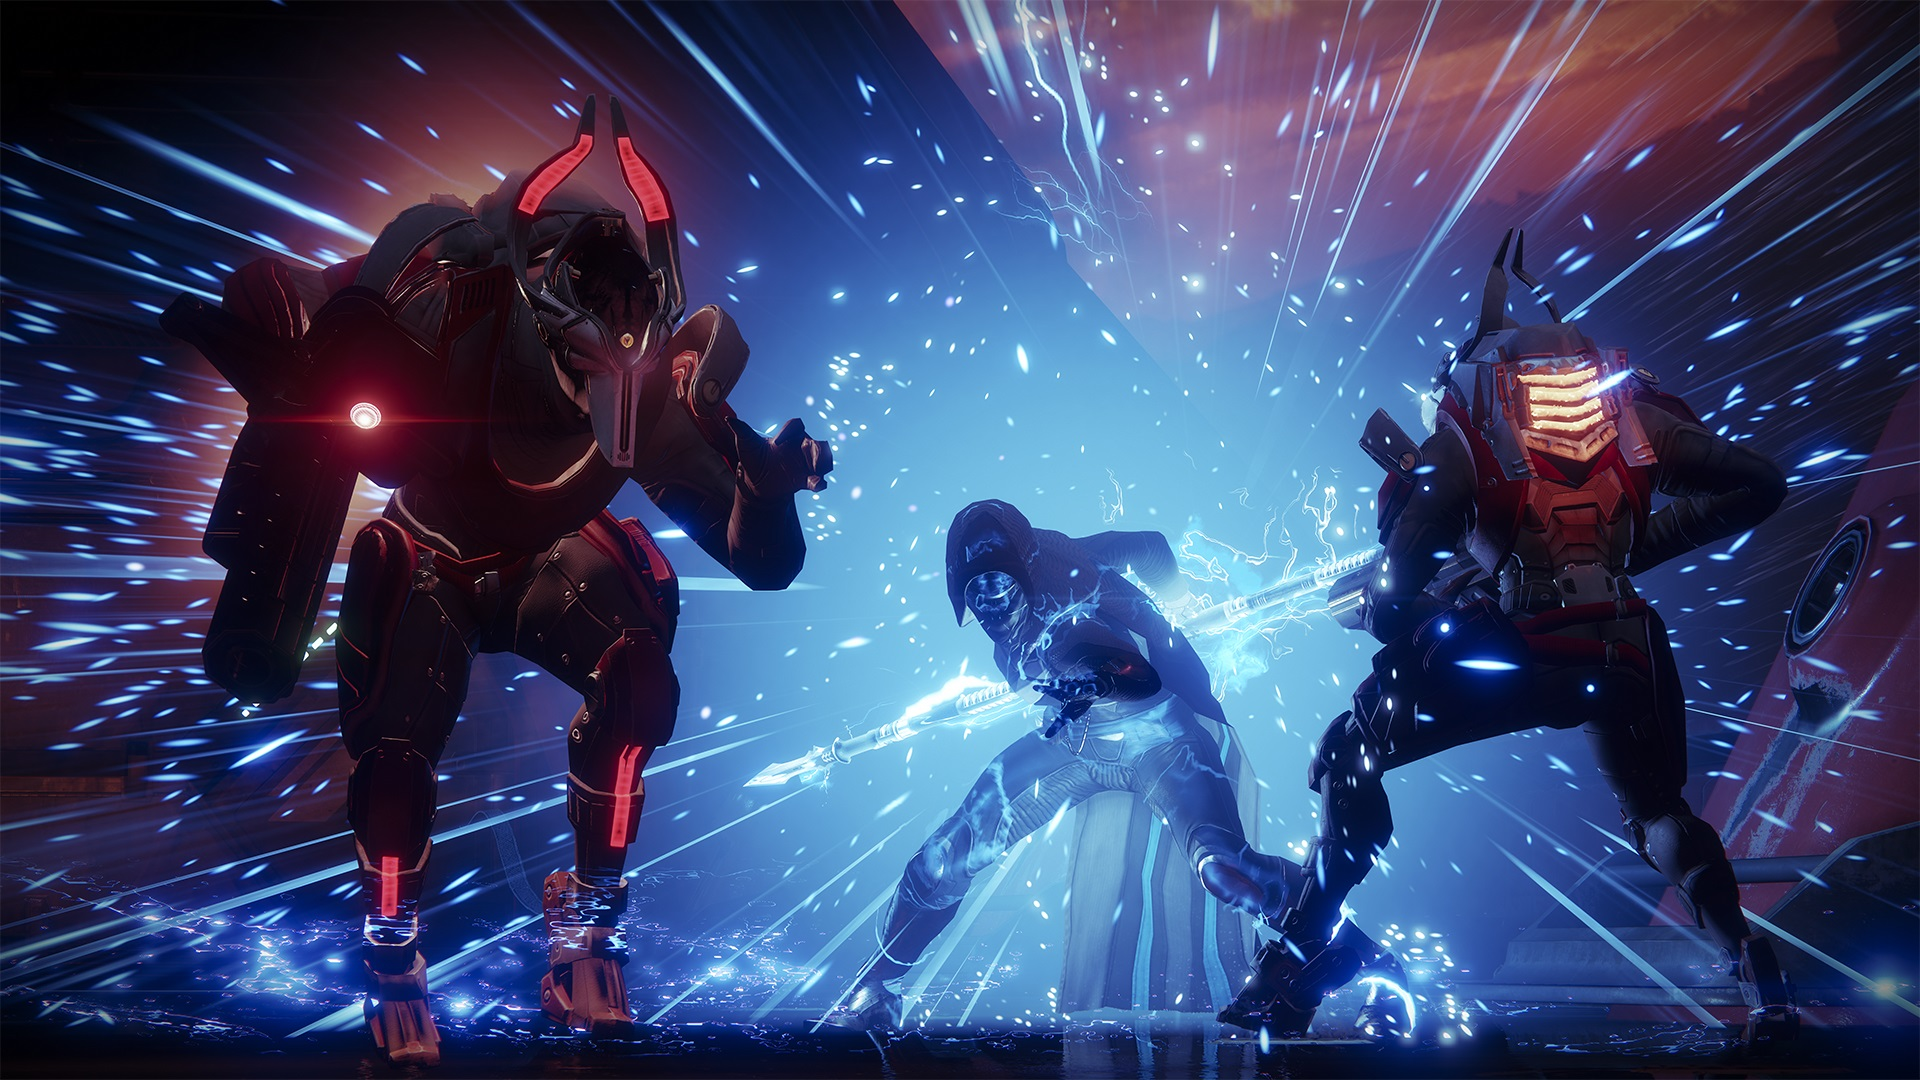 Destiny 2 has something completely new planned for the fall screenshot